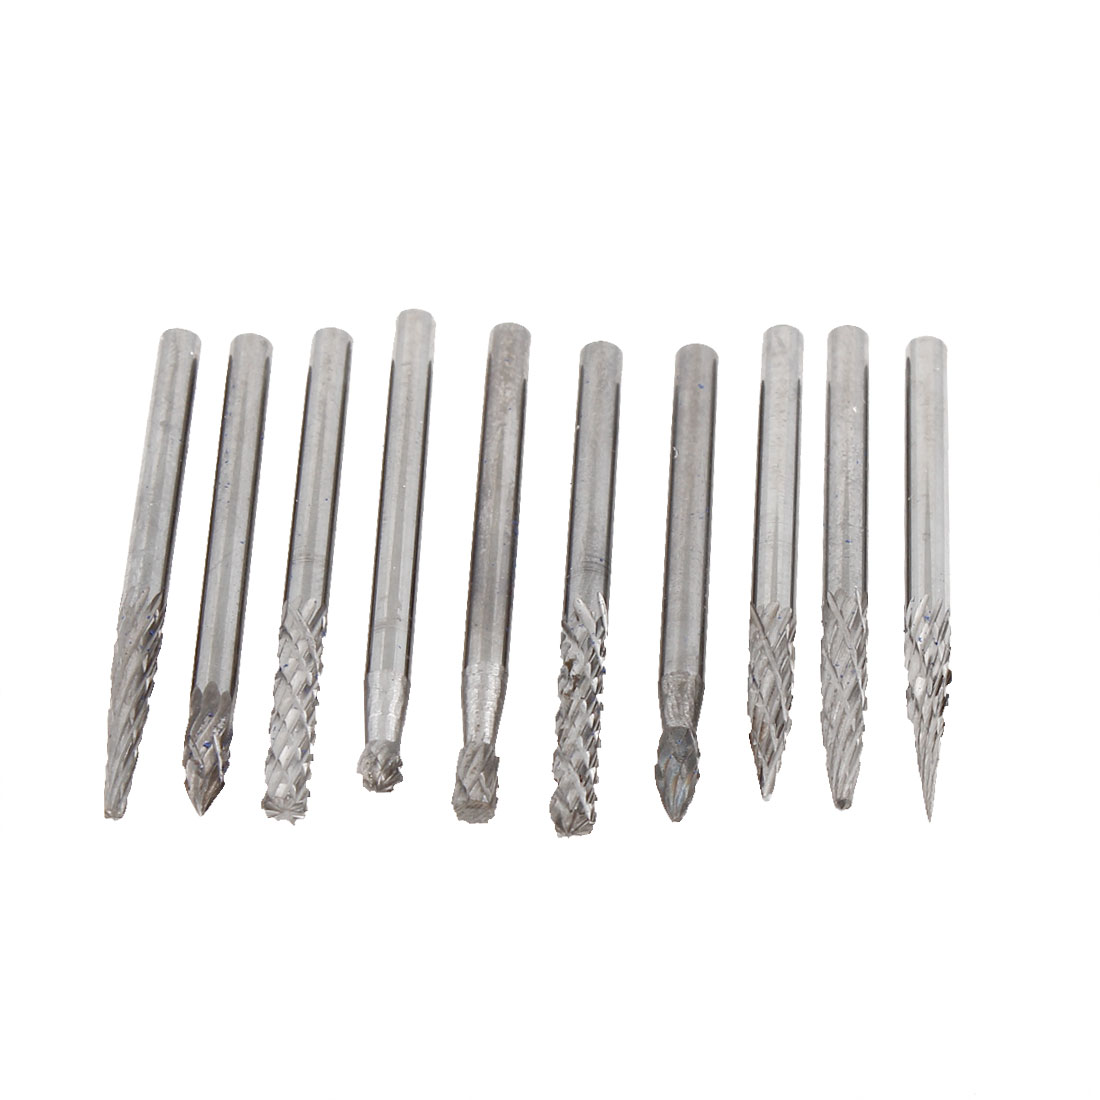 Alloy Coated Needle Taper Round Tip 3mm x 3mm Grinding Bits 10 in 1